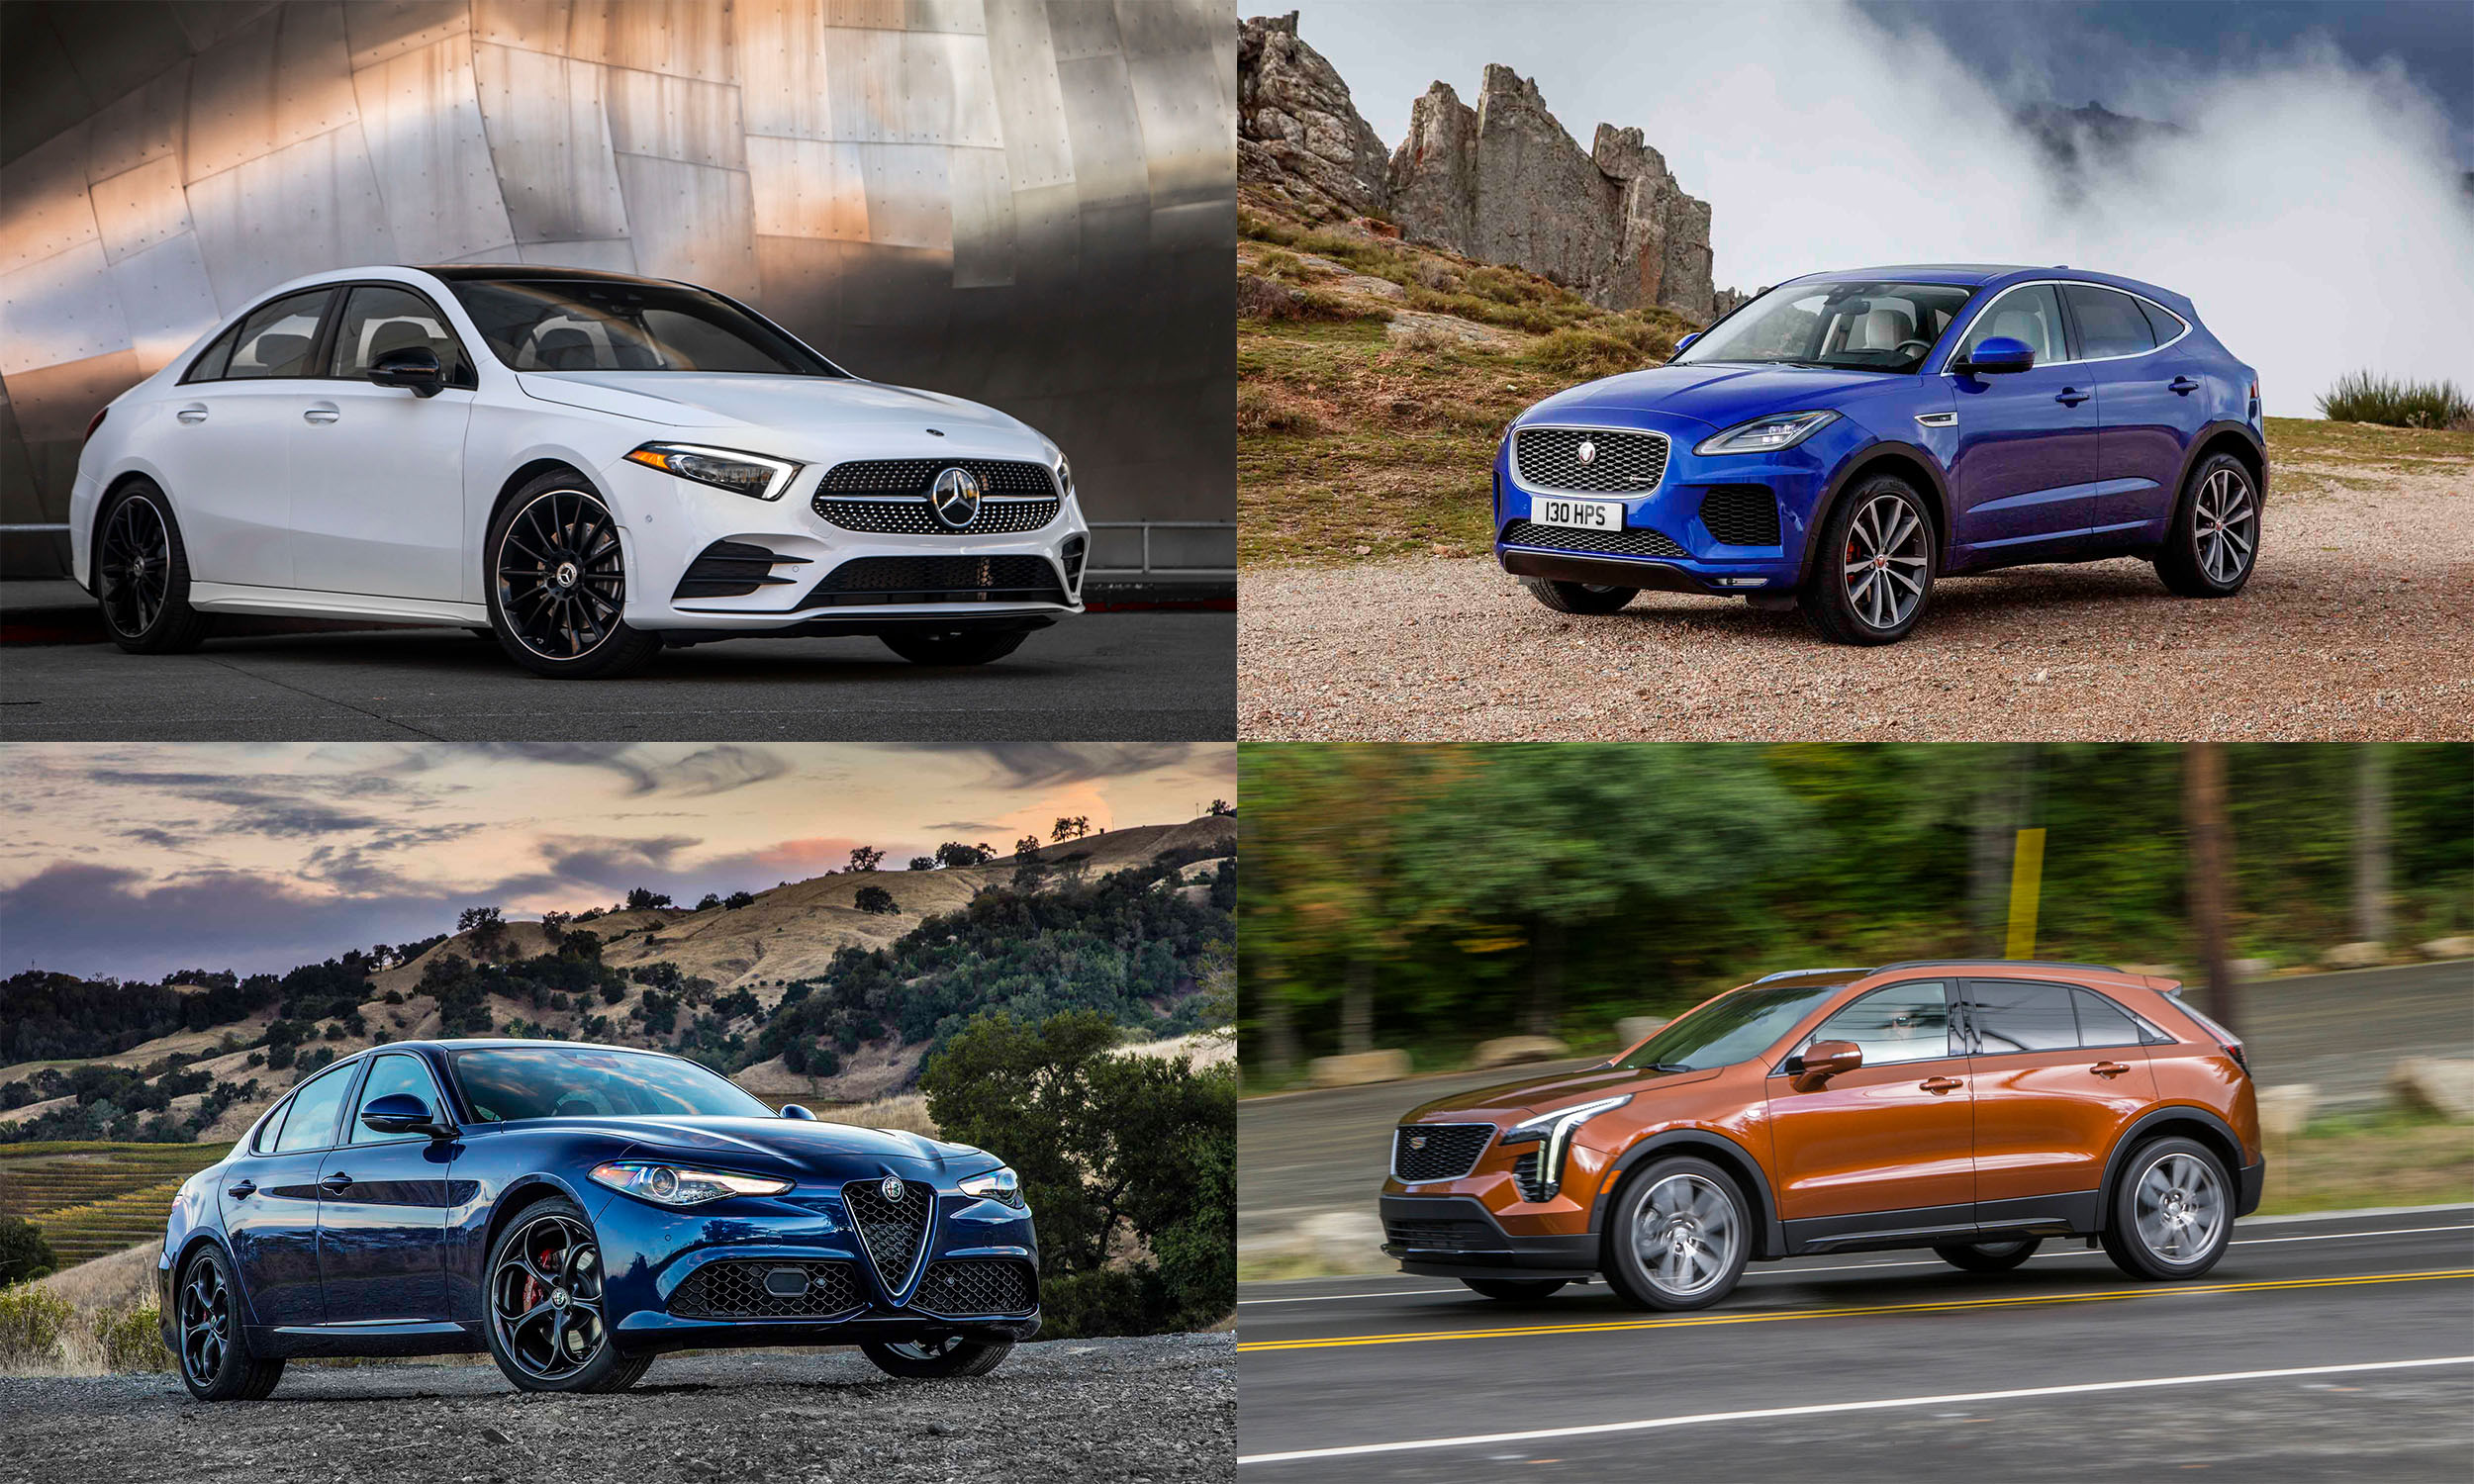 © Mercedes-Benz USA, © FCA US, © Jaguar Land Rover, © Automotive Content Experience